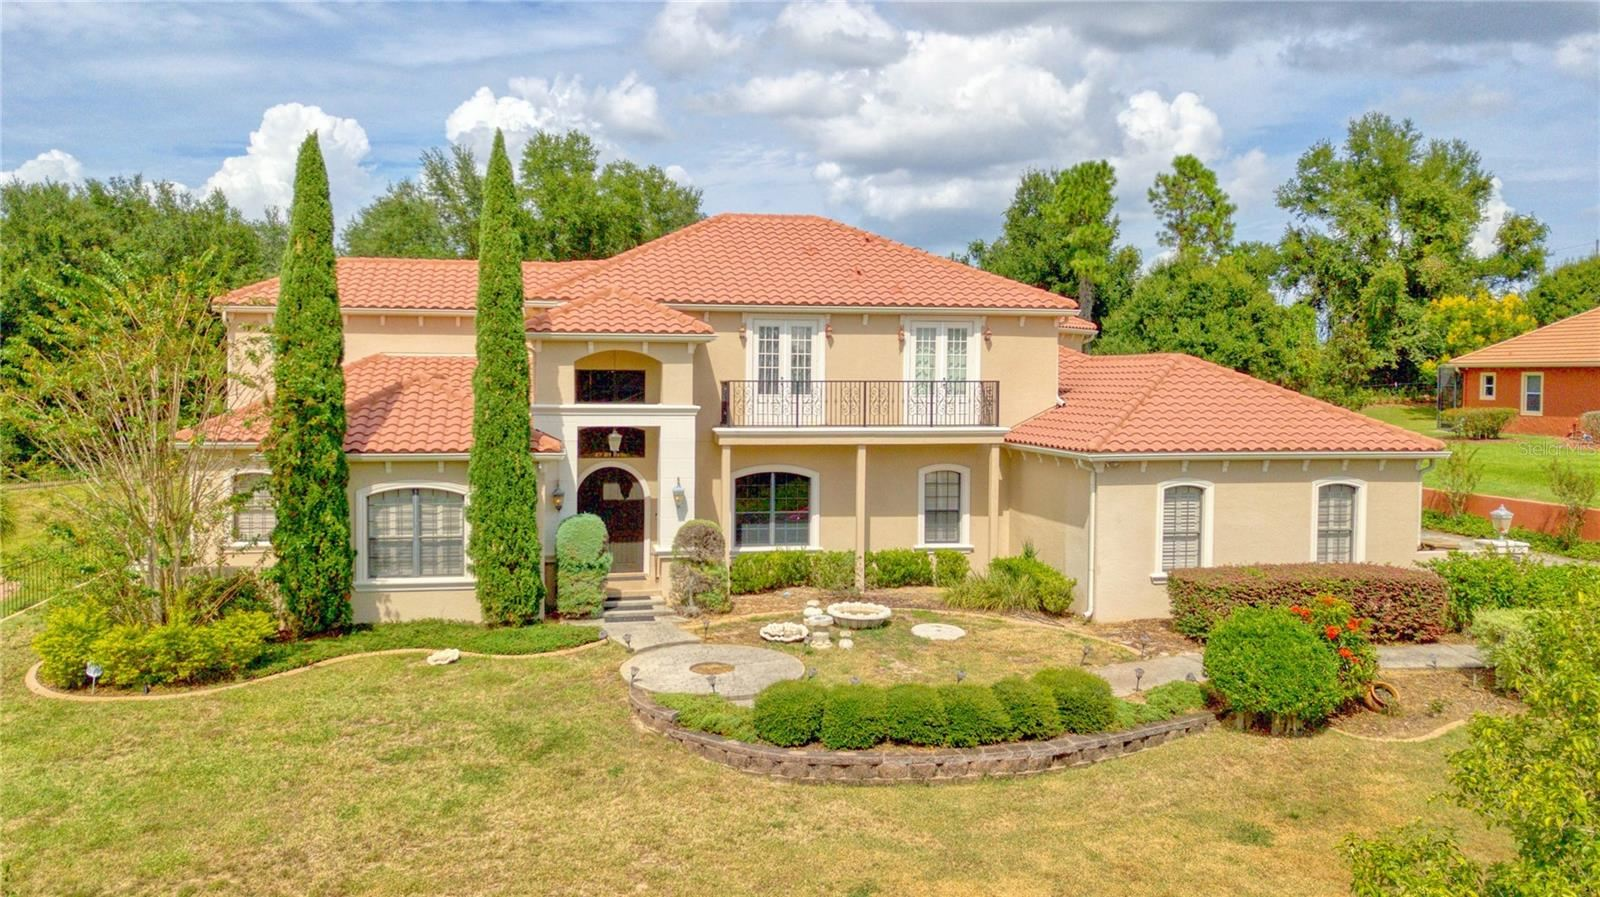 12143 OUTLOOK DRIVE, Clermont, FL 34711 - #: O5978171